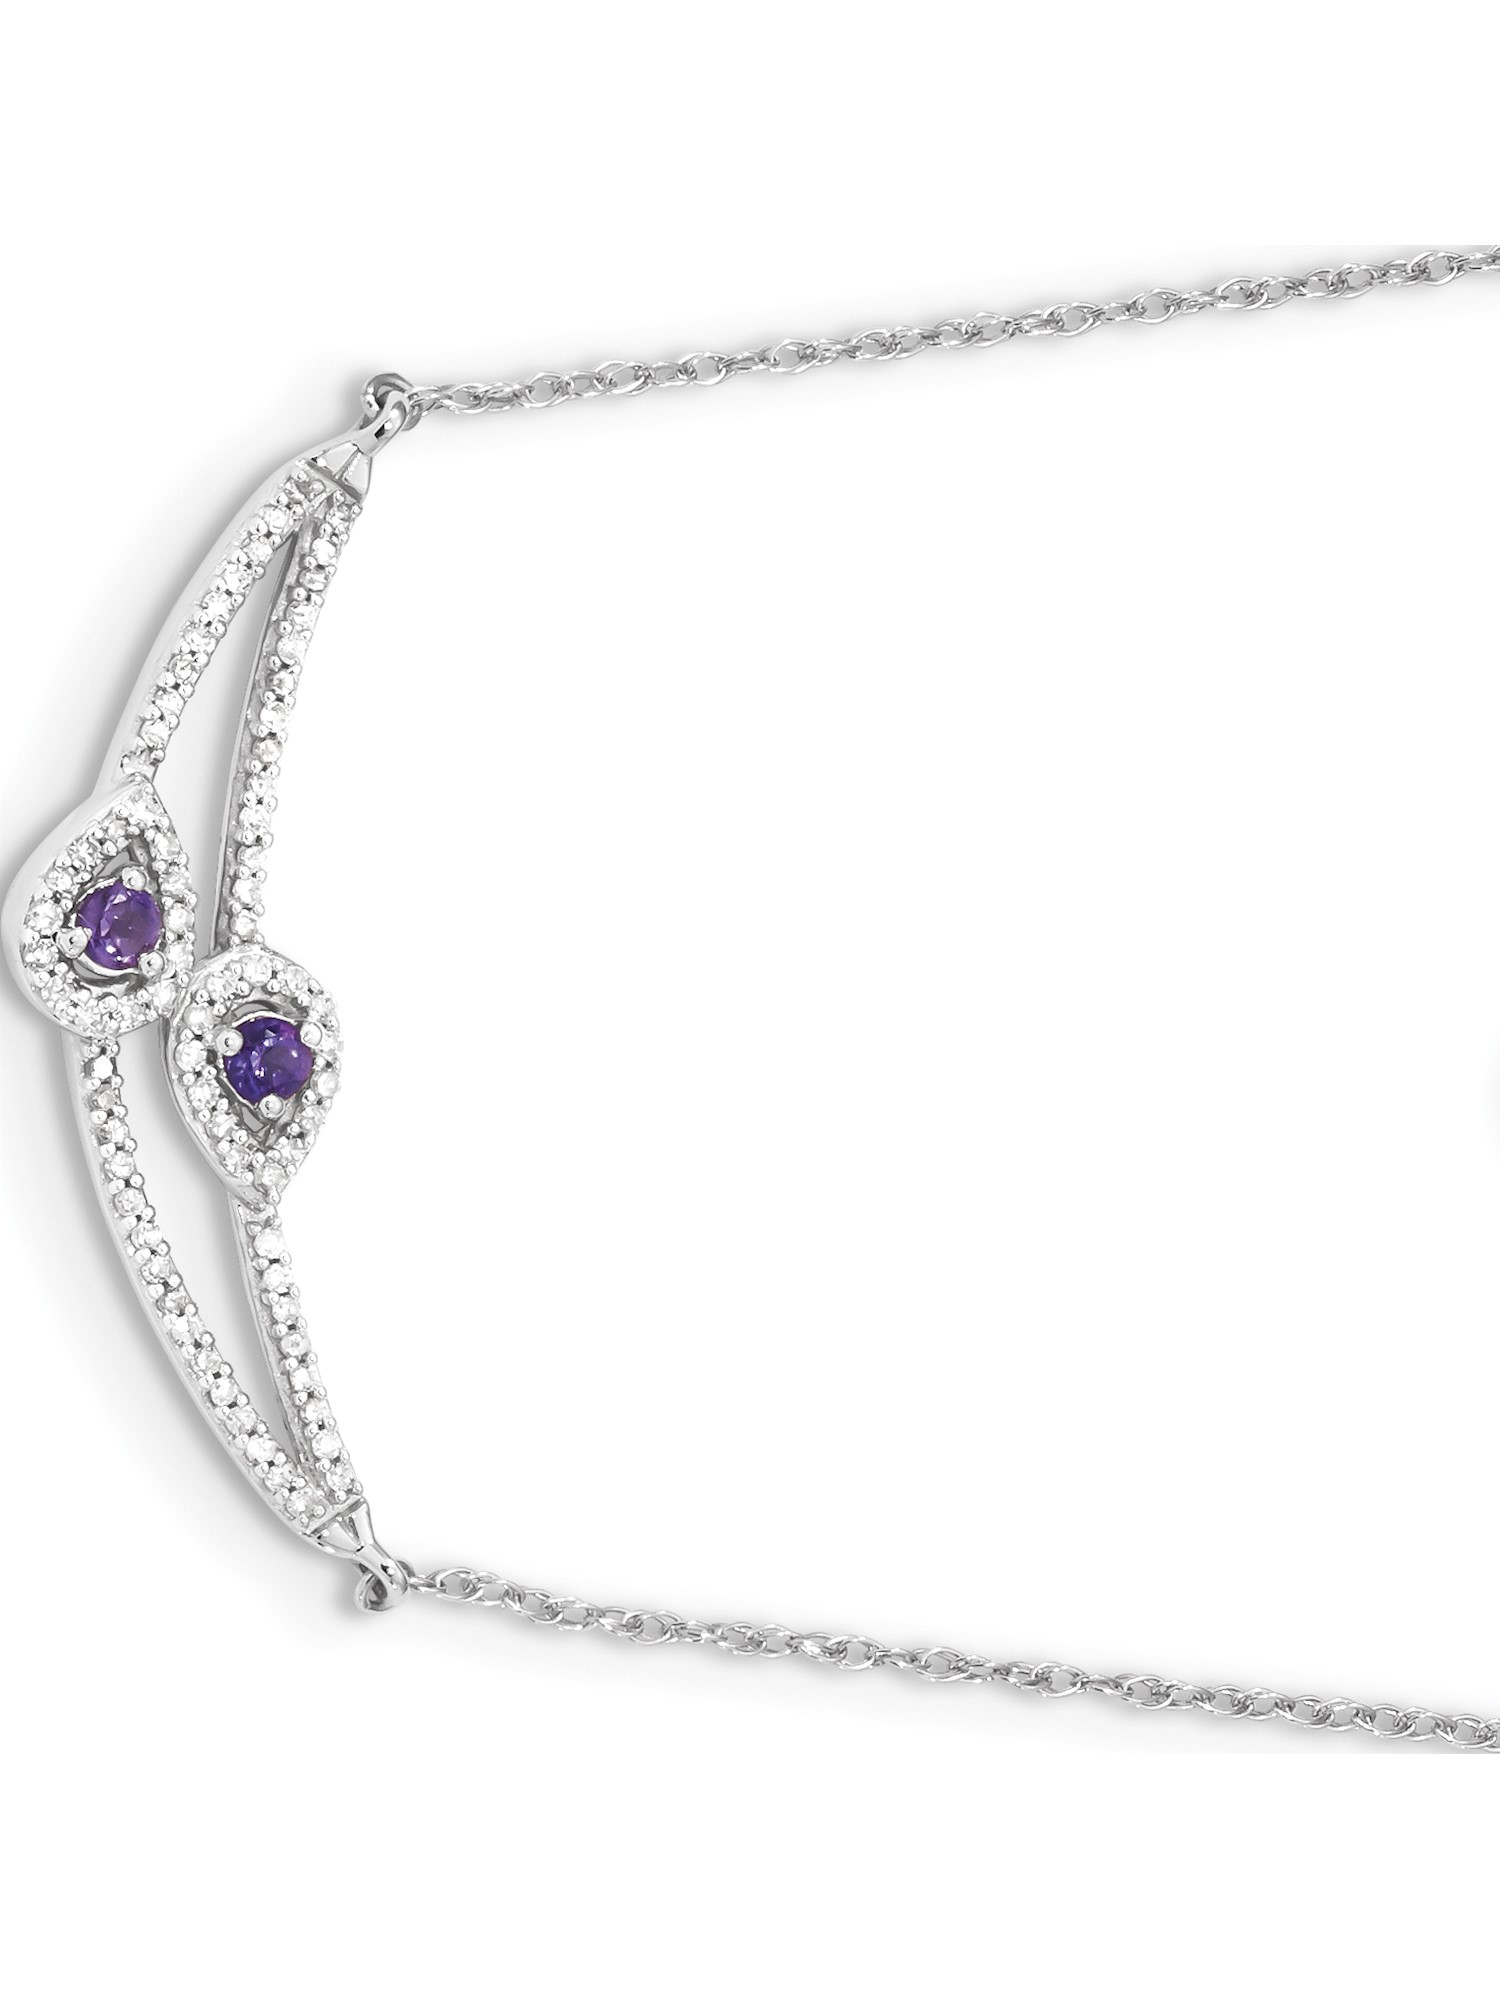 14k White Gold White Diamond & Amethyst Necklace by